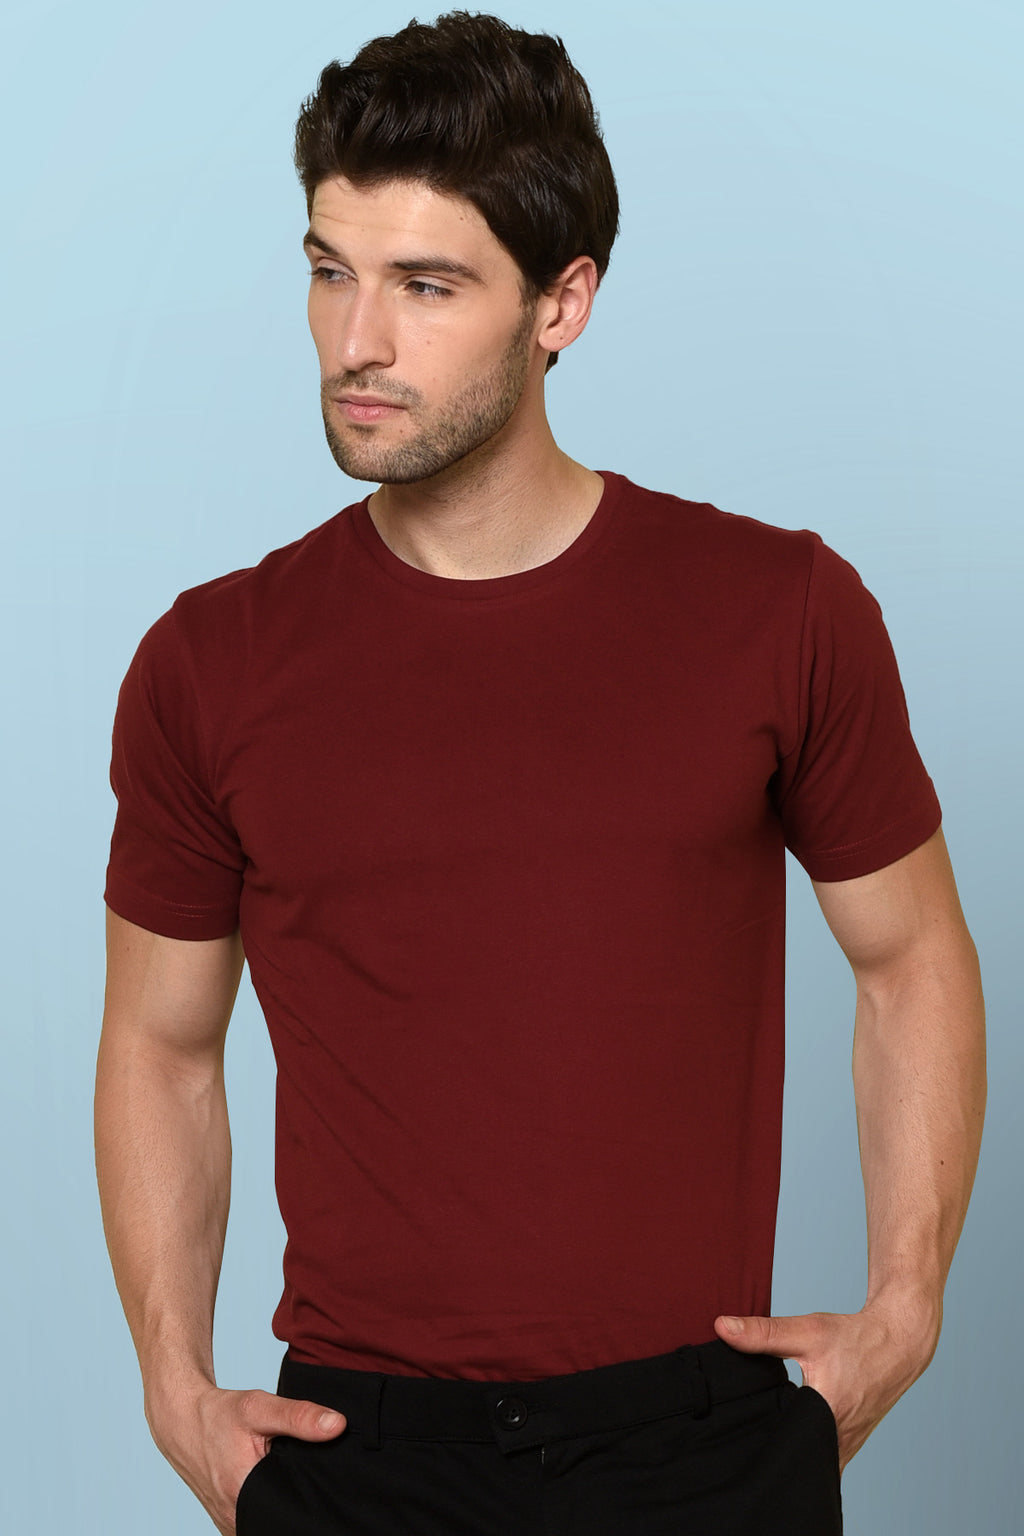 Milano Red color T-shirt by Beyours